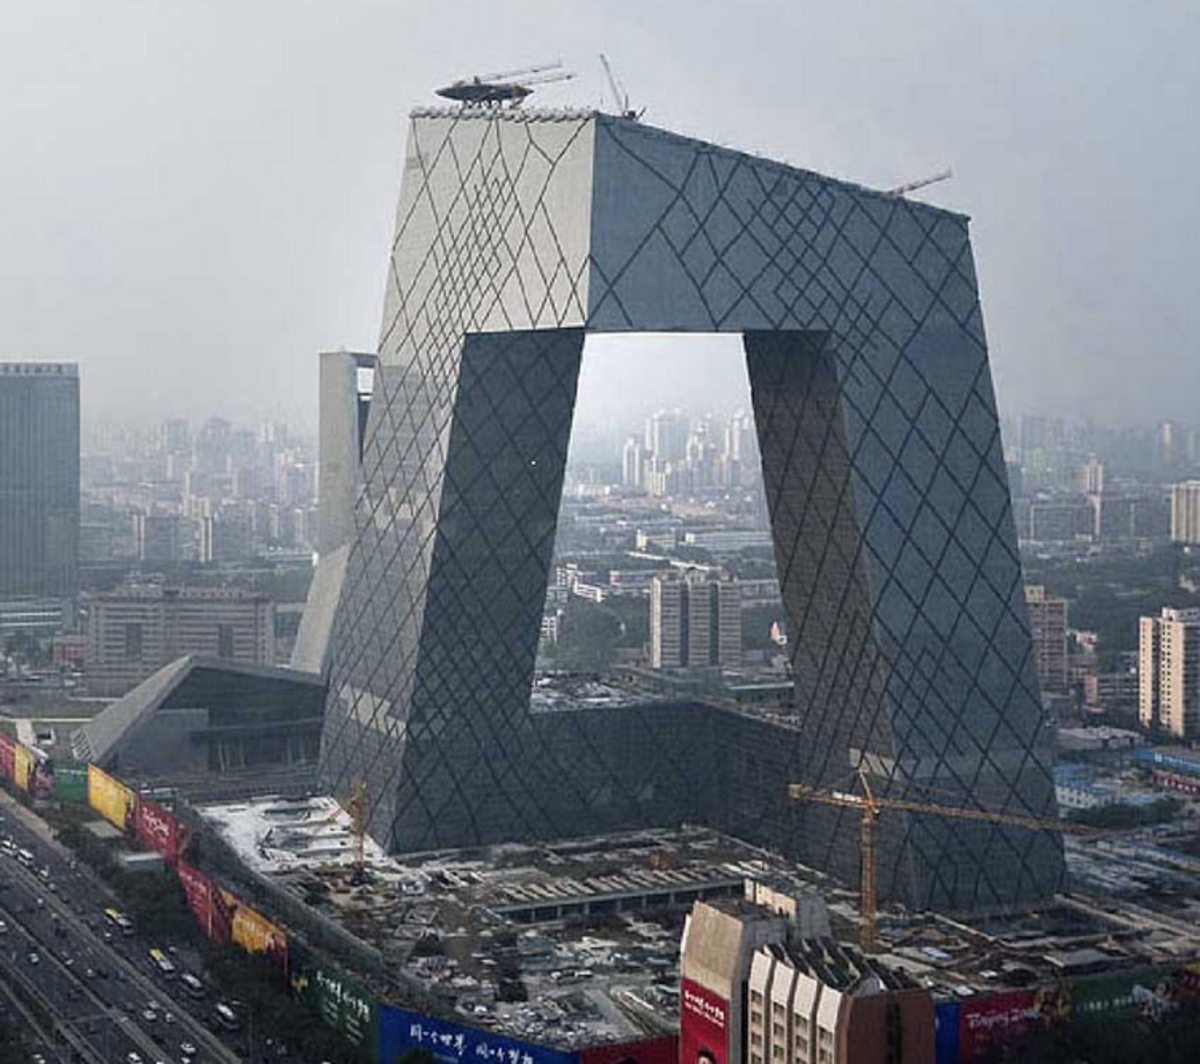 CCTV tower, designed by Rem Koolhaas in Beijing: Photo: e-architect.co.uk